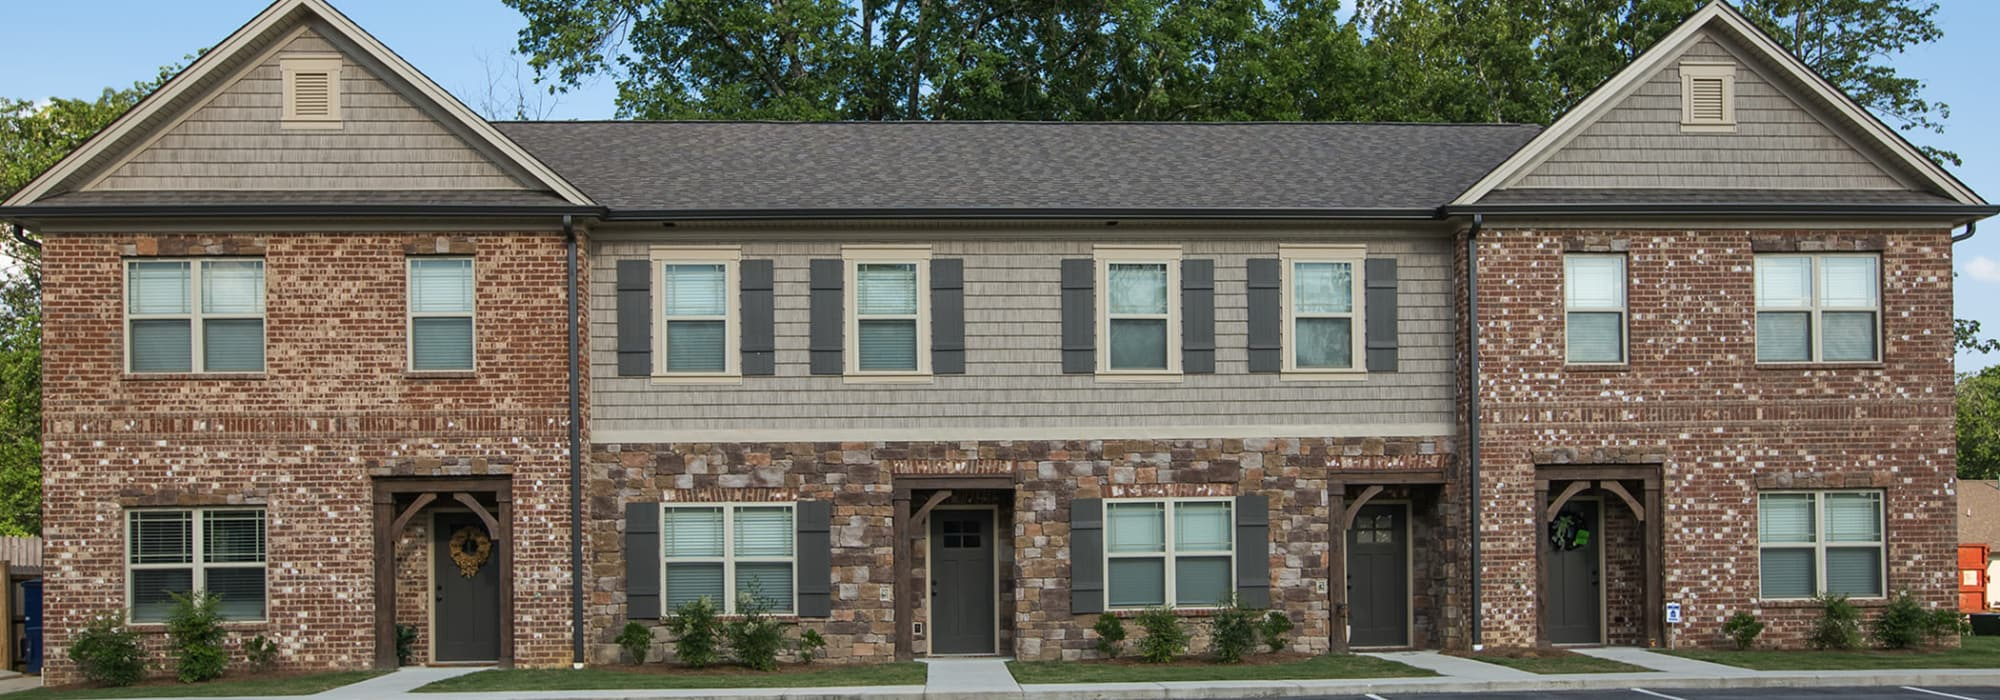 Apartments at Lennox Commons in Chattanooga, Tennessee